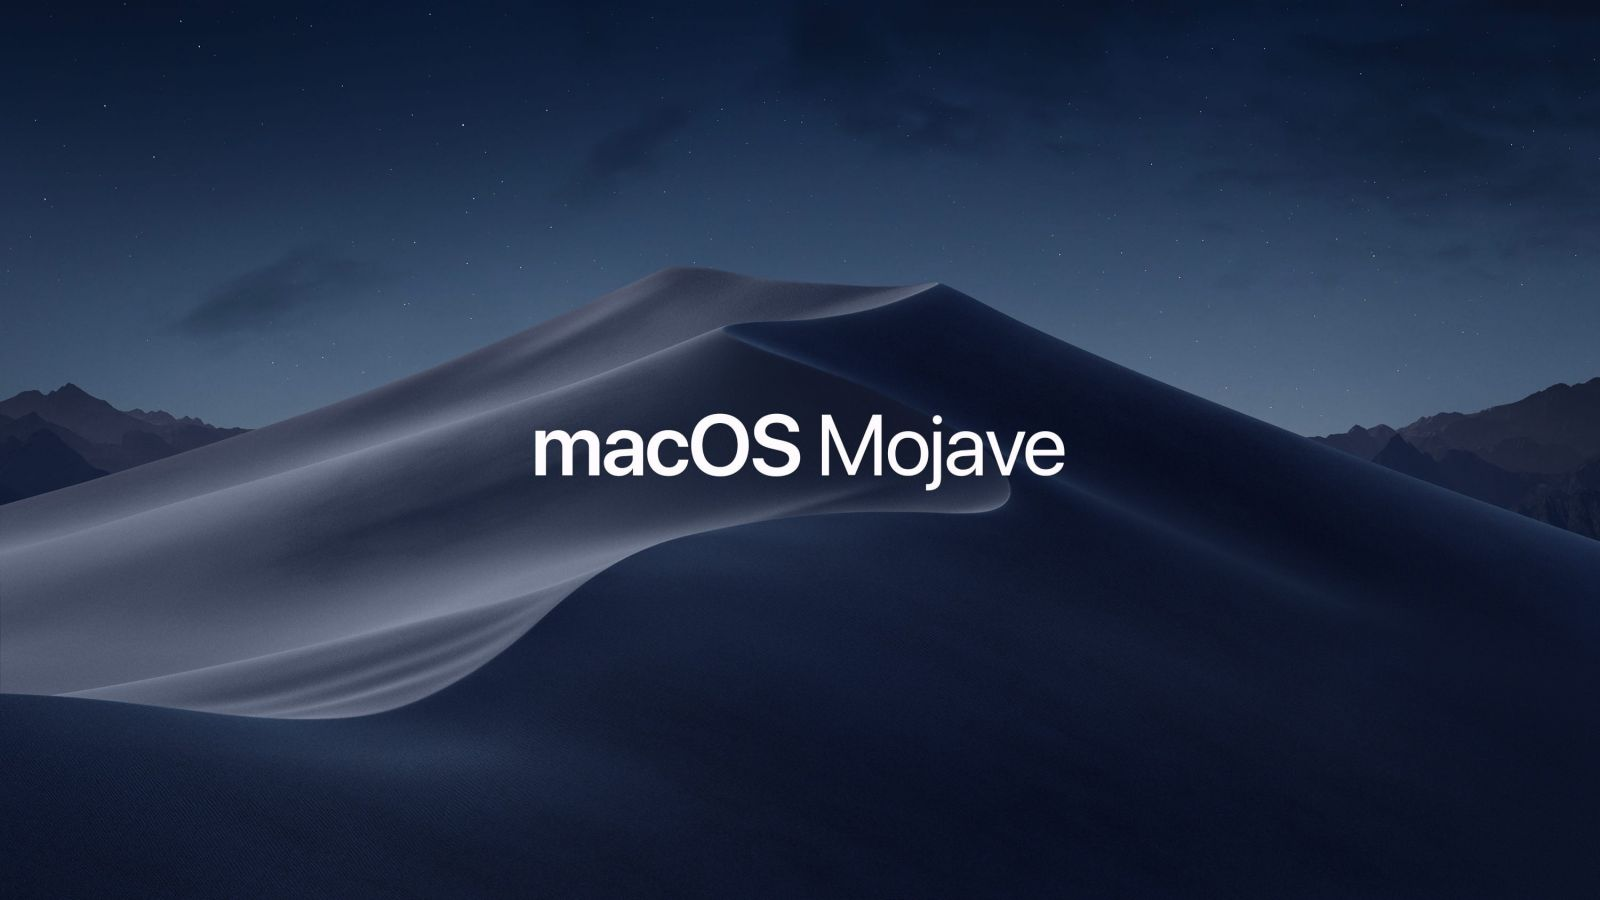 macOS Mojave 10 14 Support for Denon DJ Products | Denon DJ